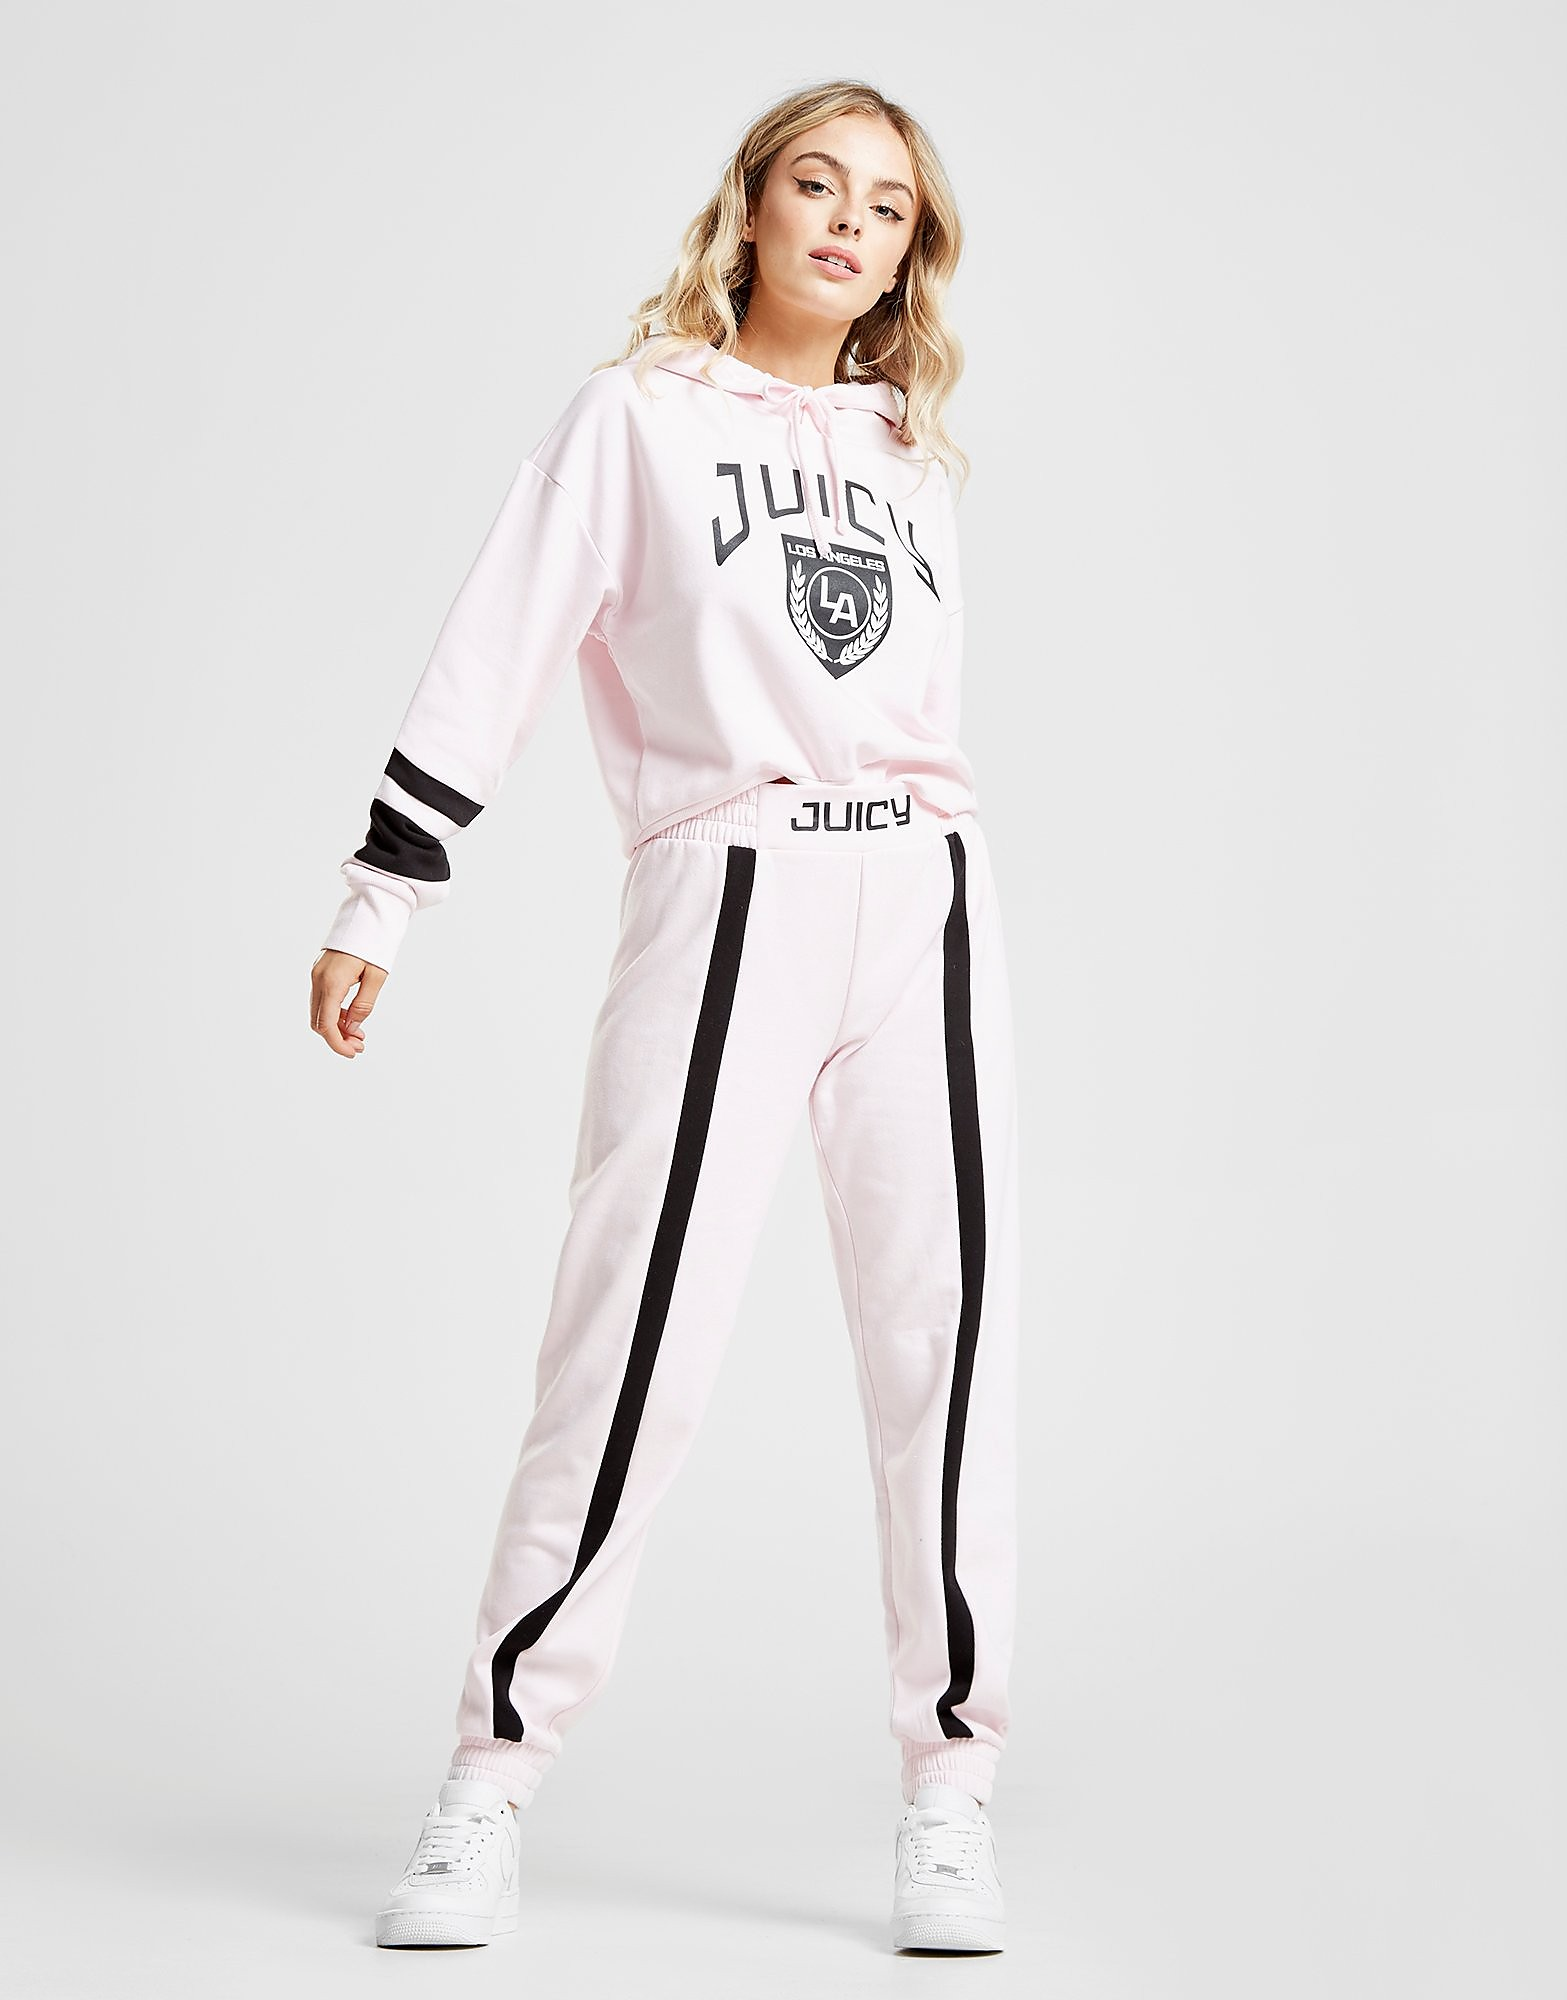 Juicy by Juicy Couture Racer Track Pants Dames - Roze - Dames